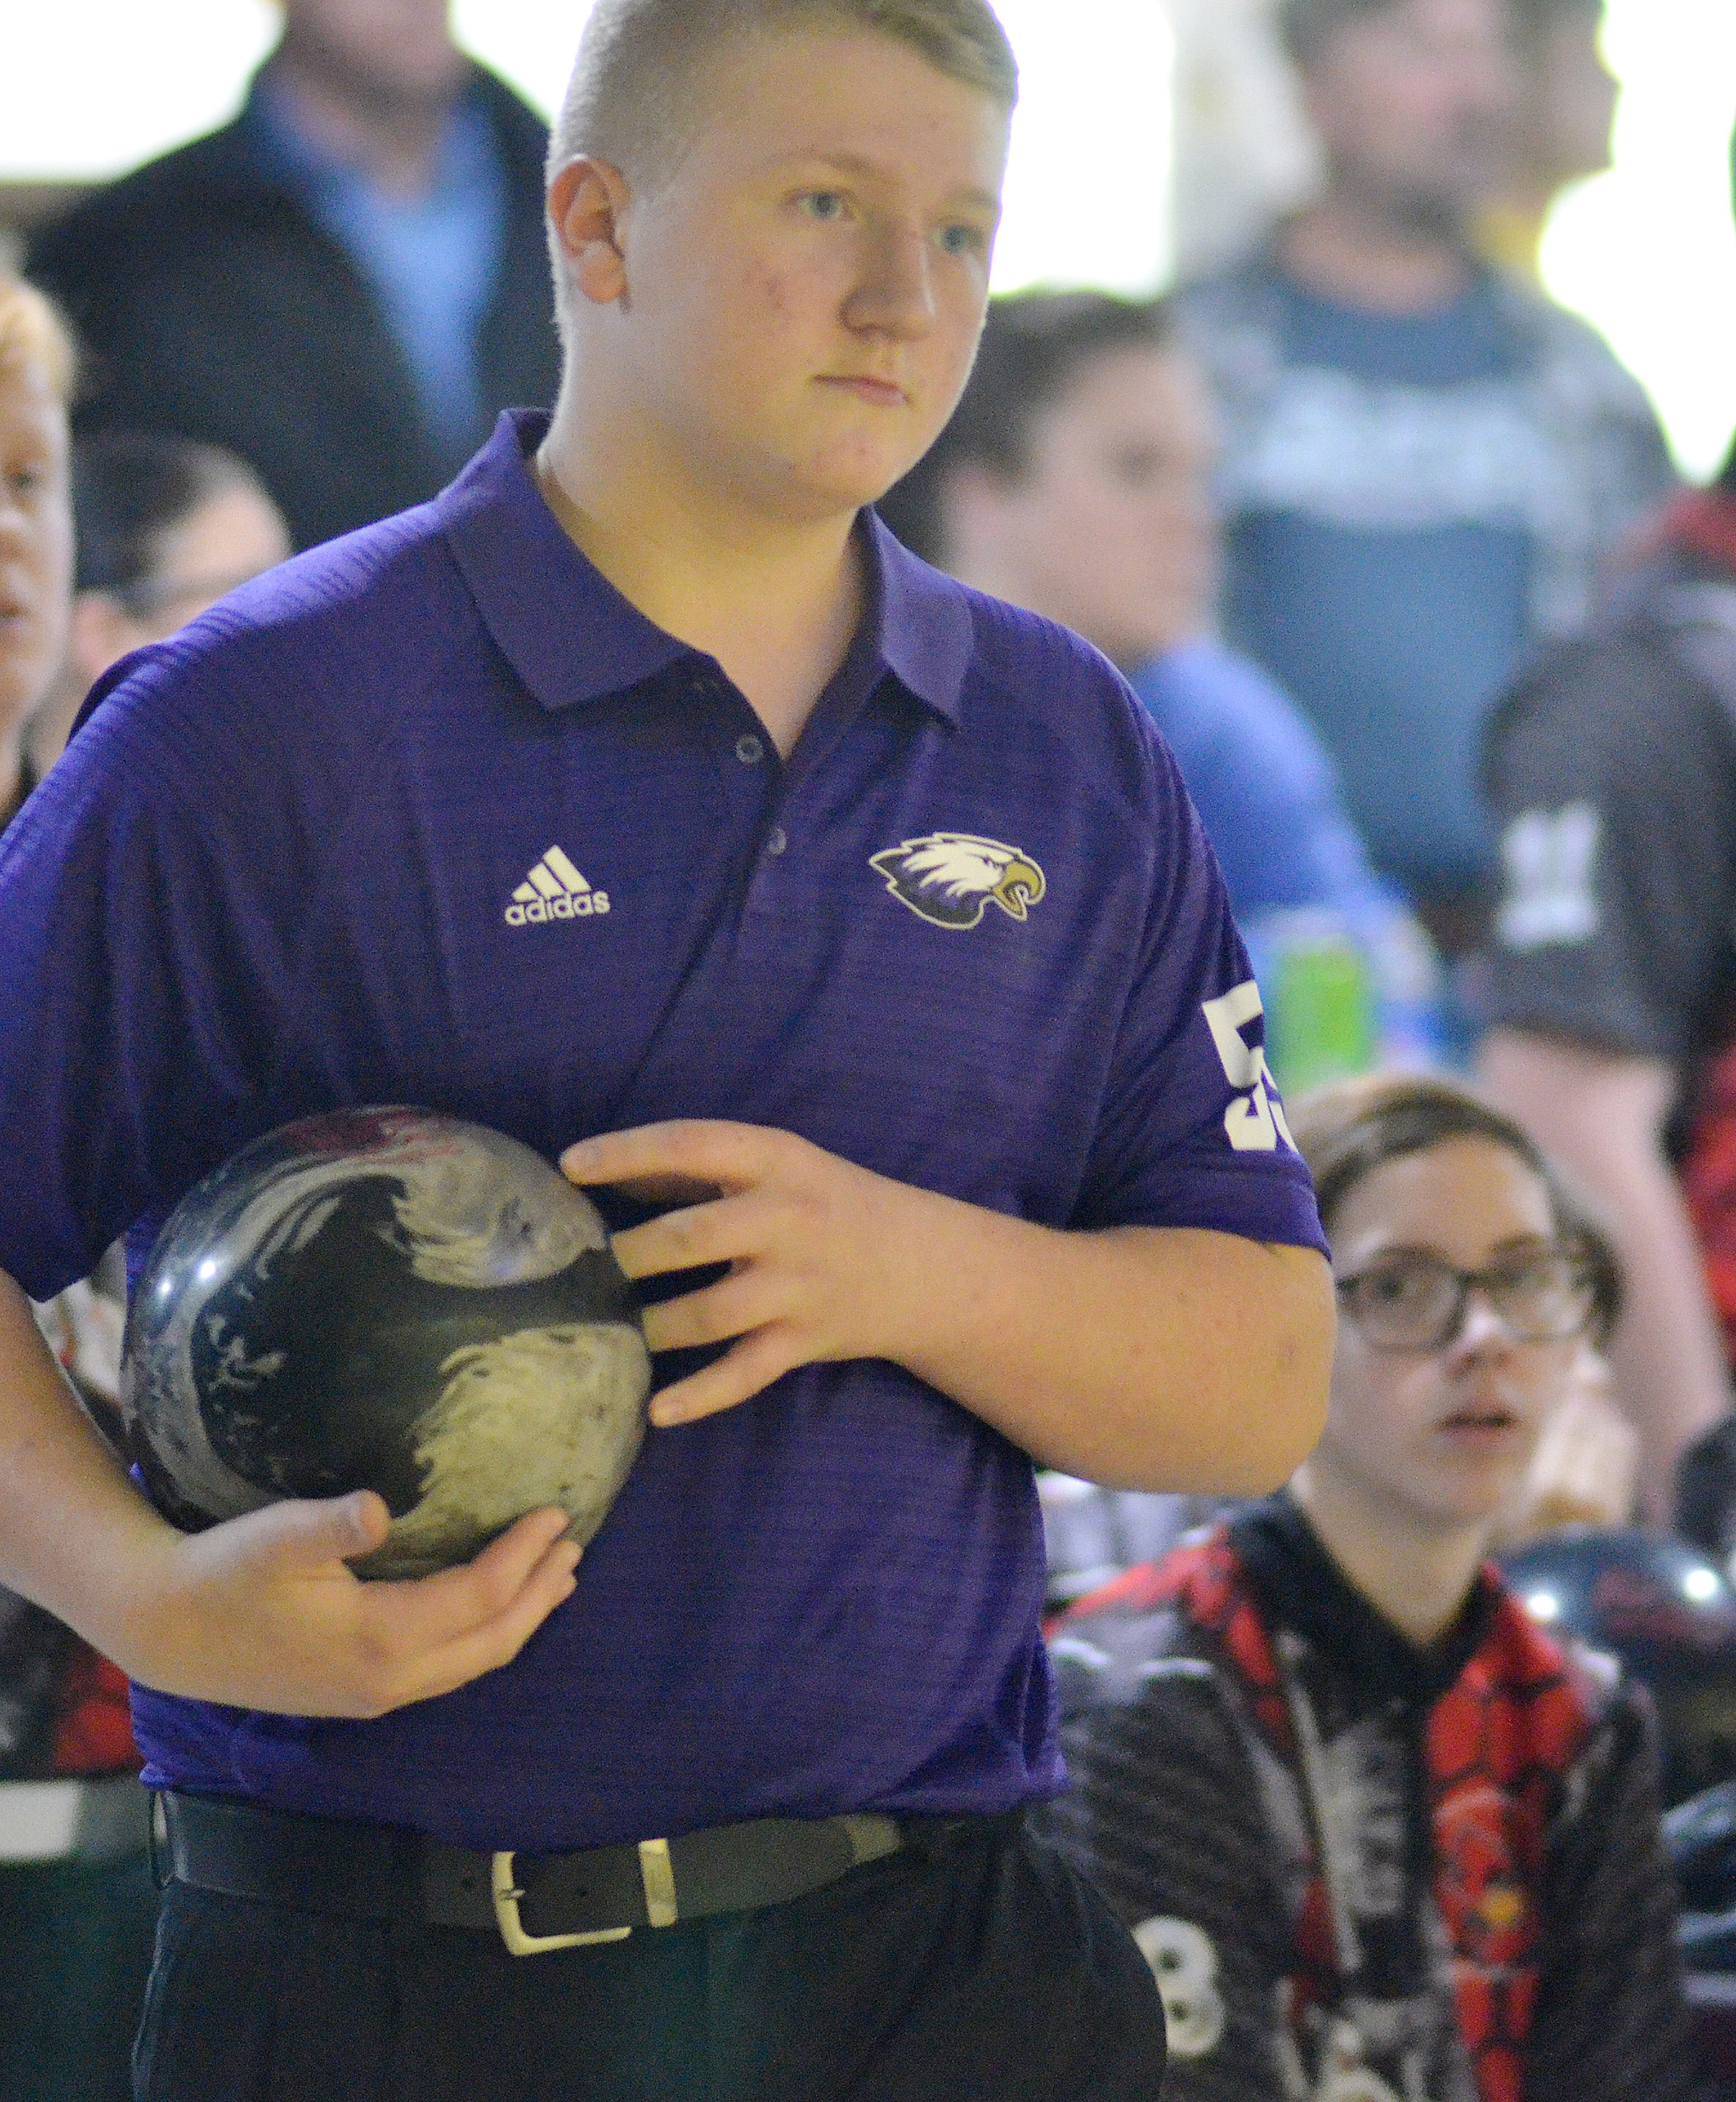 Campbellsville Middle School seventh-grader Levi Dicken gets ready to bowl.